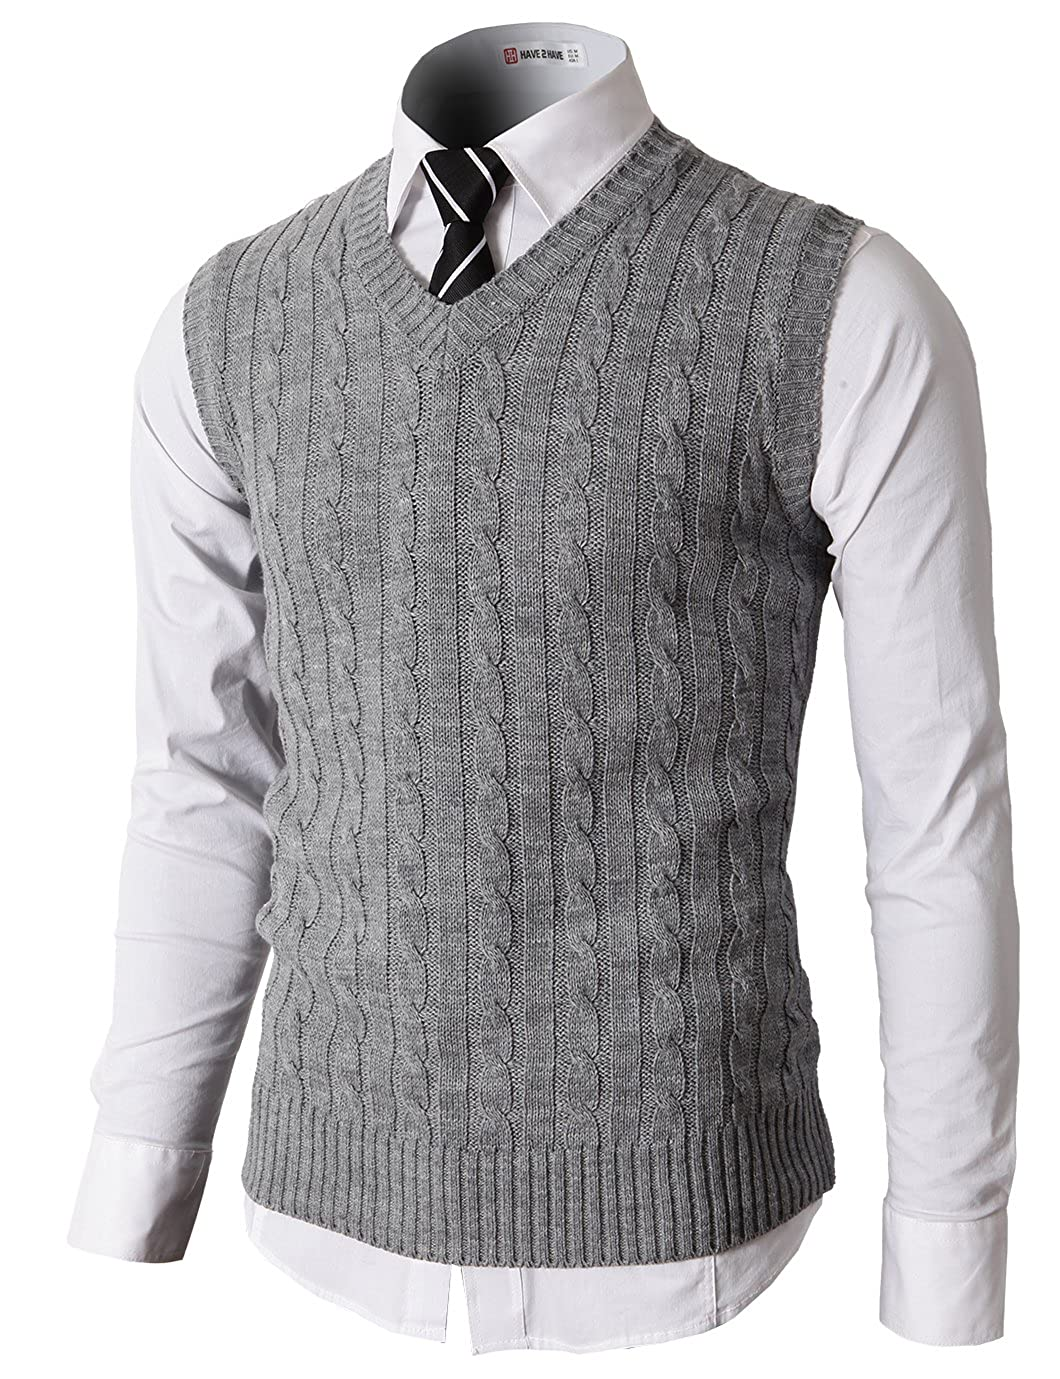 Men's Vintage Vests, Sweater Vests H2H Mens Casual Knitted Slim Fit V-neck Vest With Twisted Patterned $26.80 AT vintagedancer.com